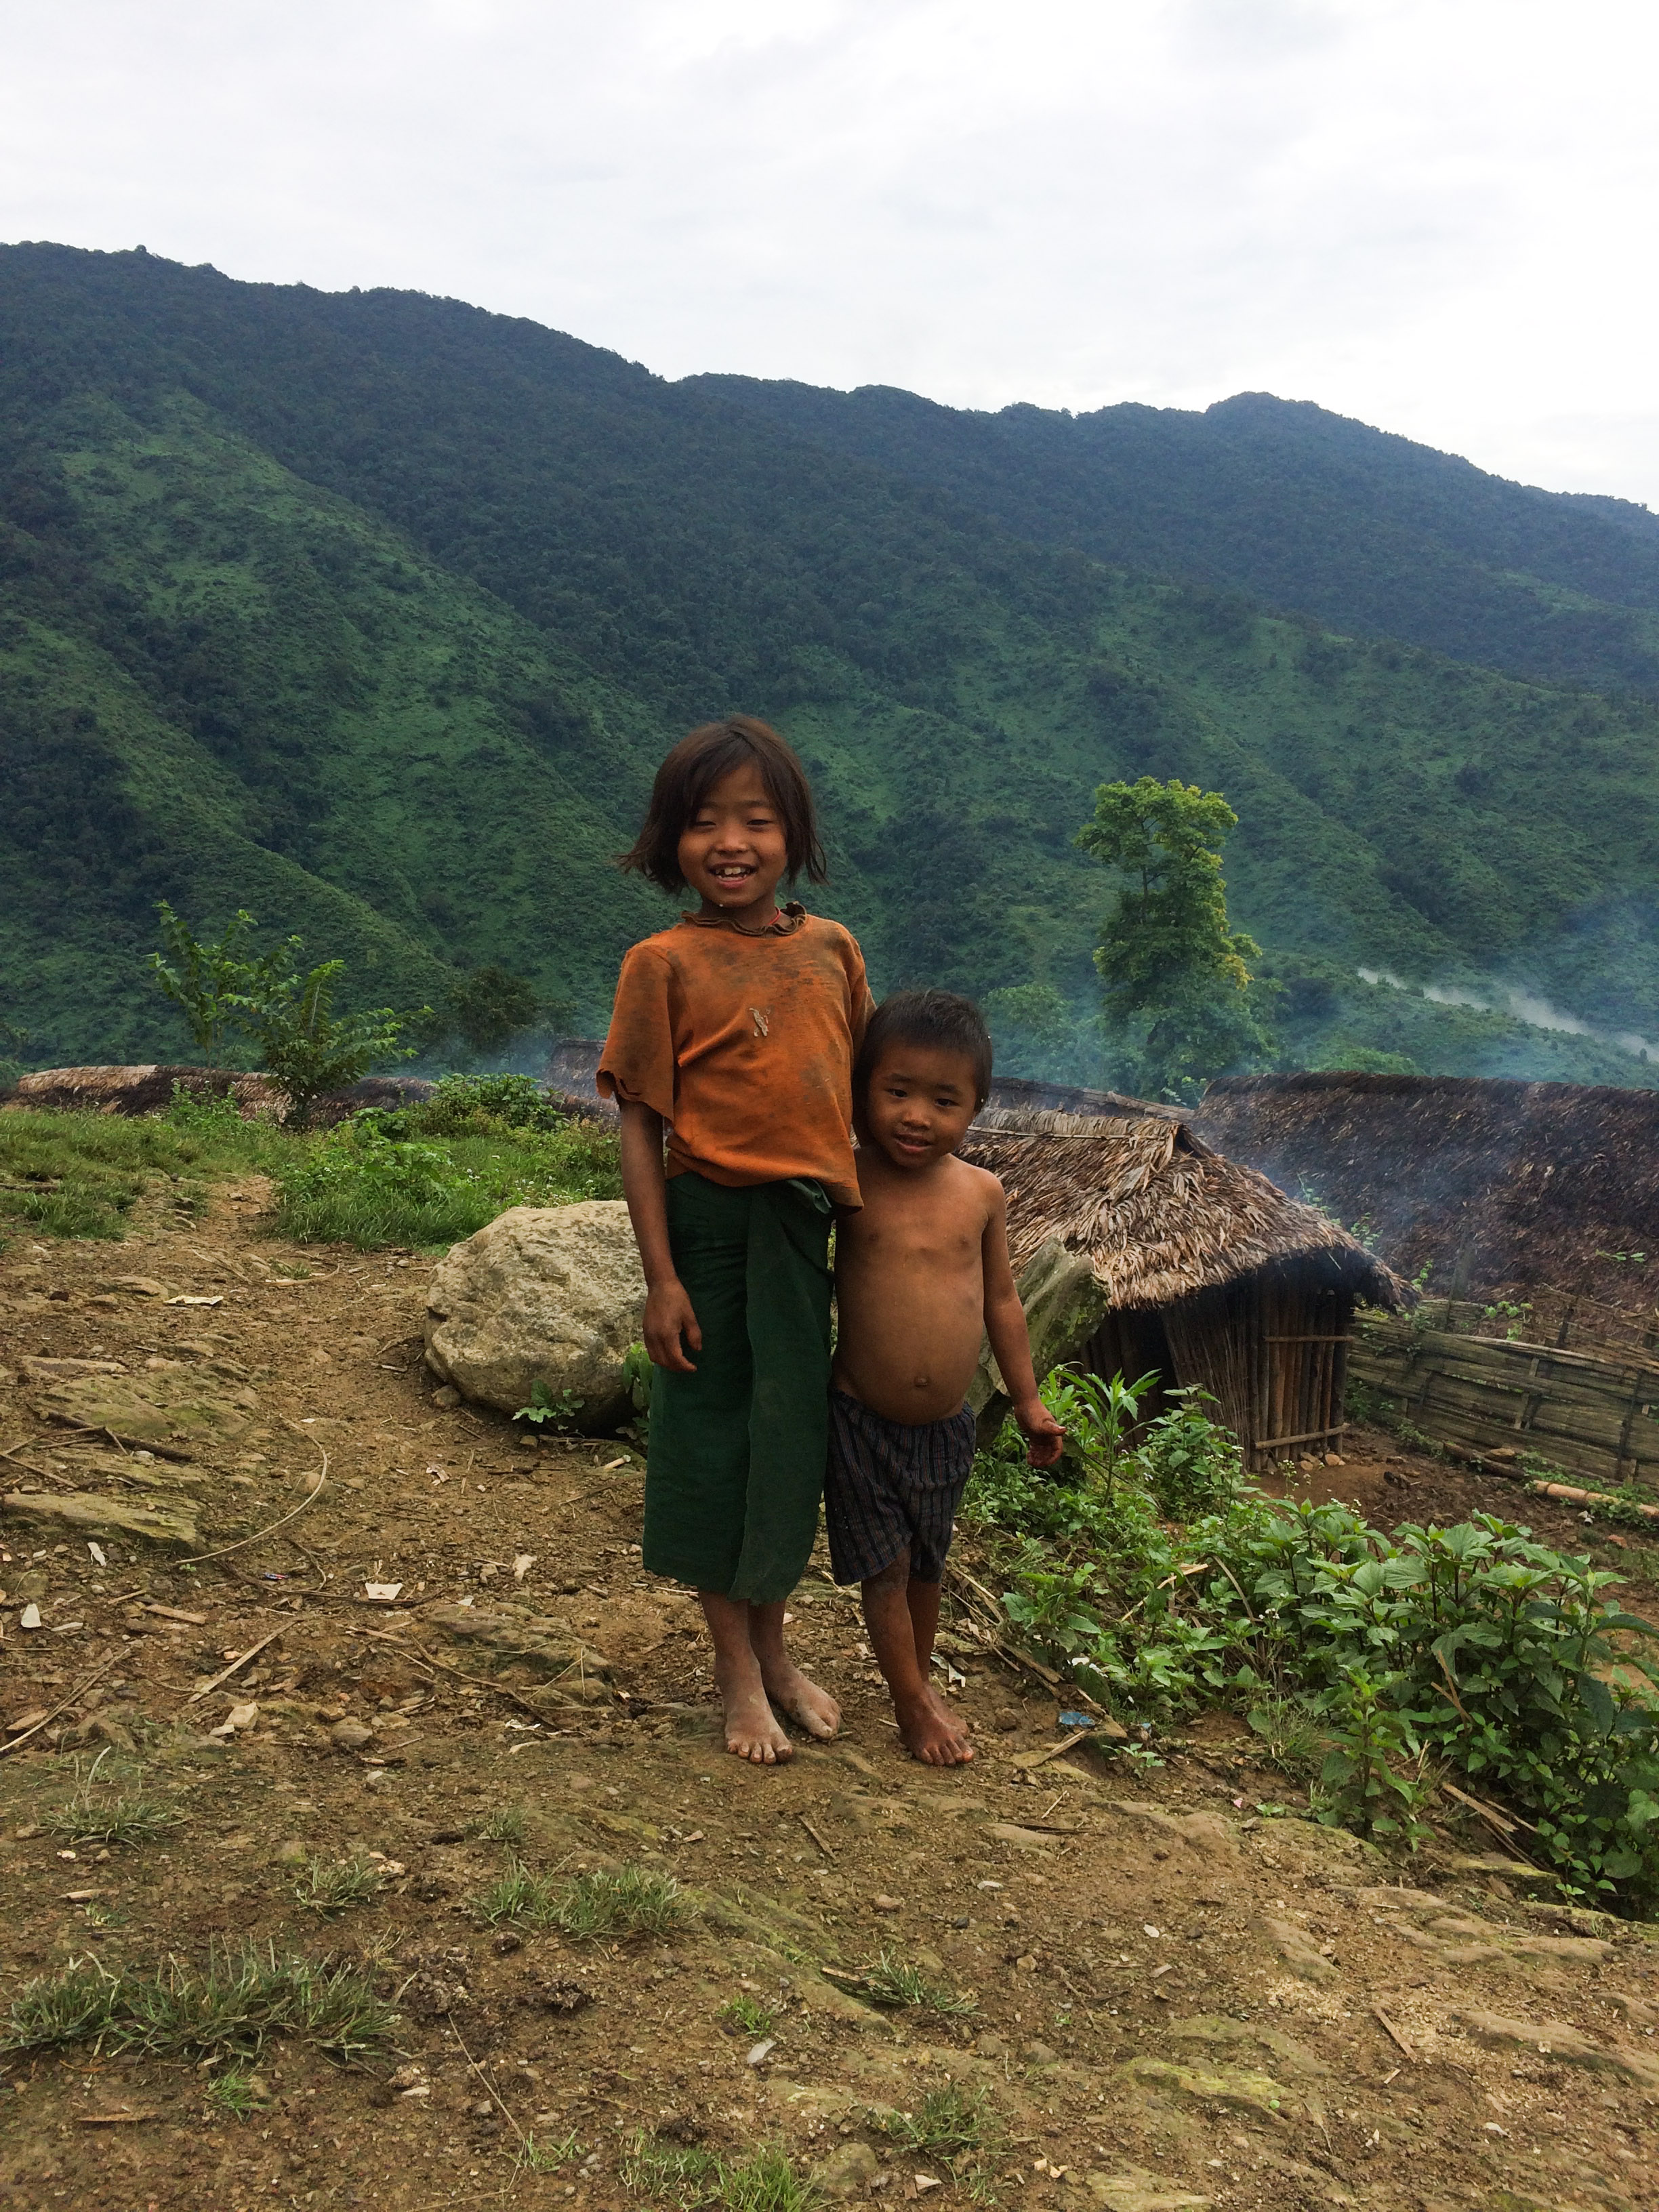 Naga children in Htan Khaw Lama village. (Photo: Nan Tin Htwe)